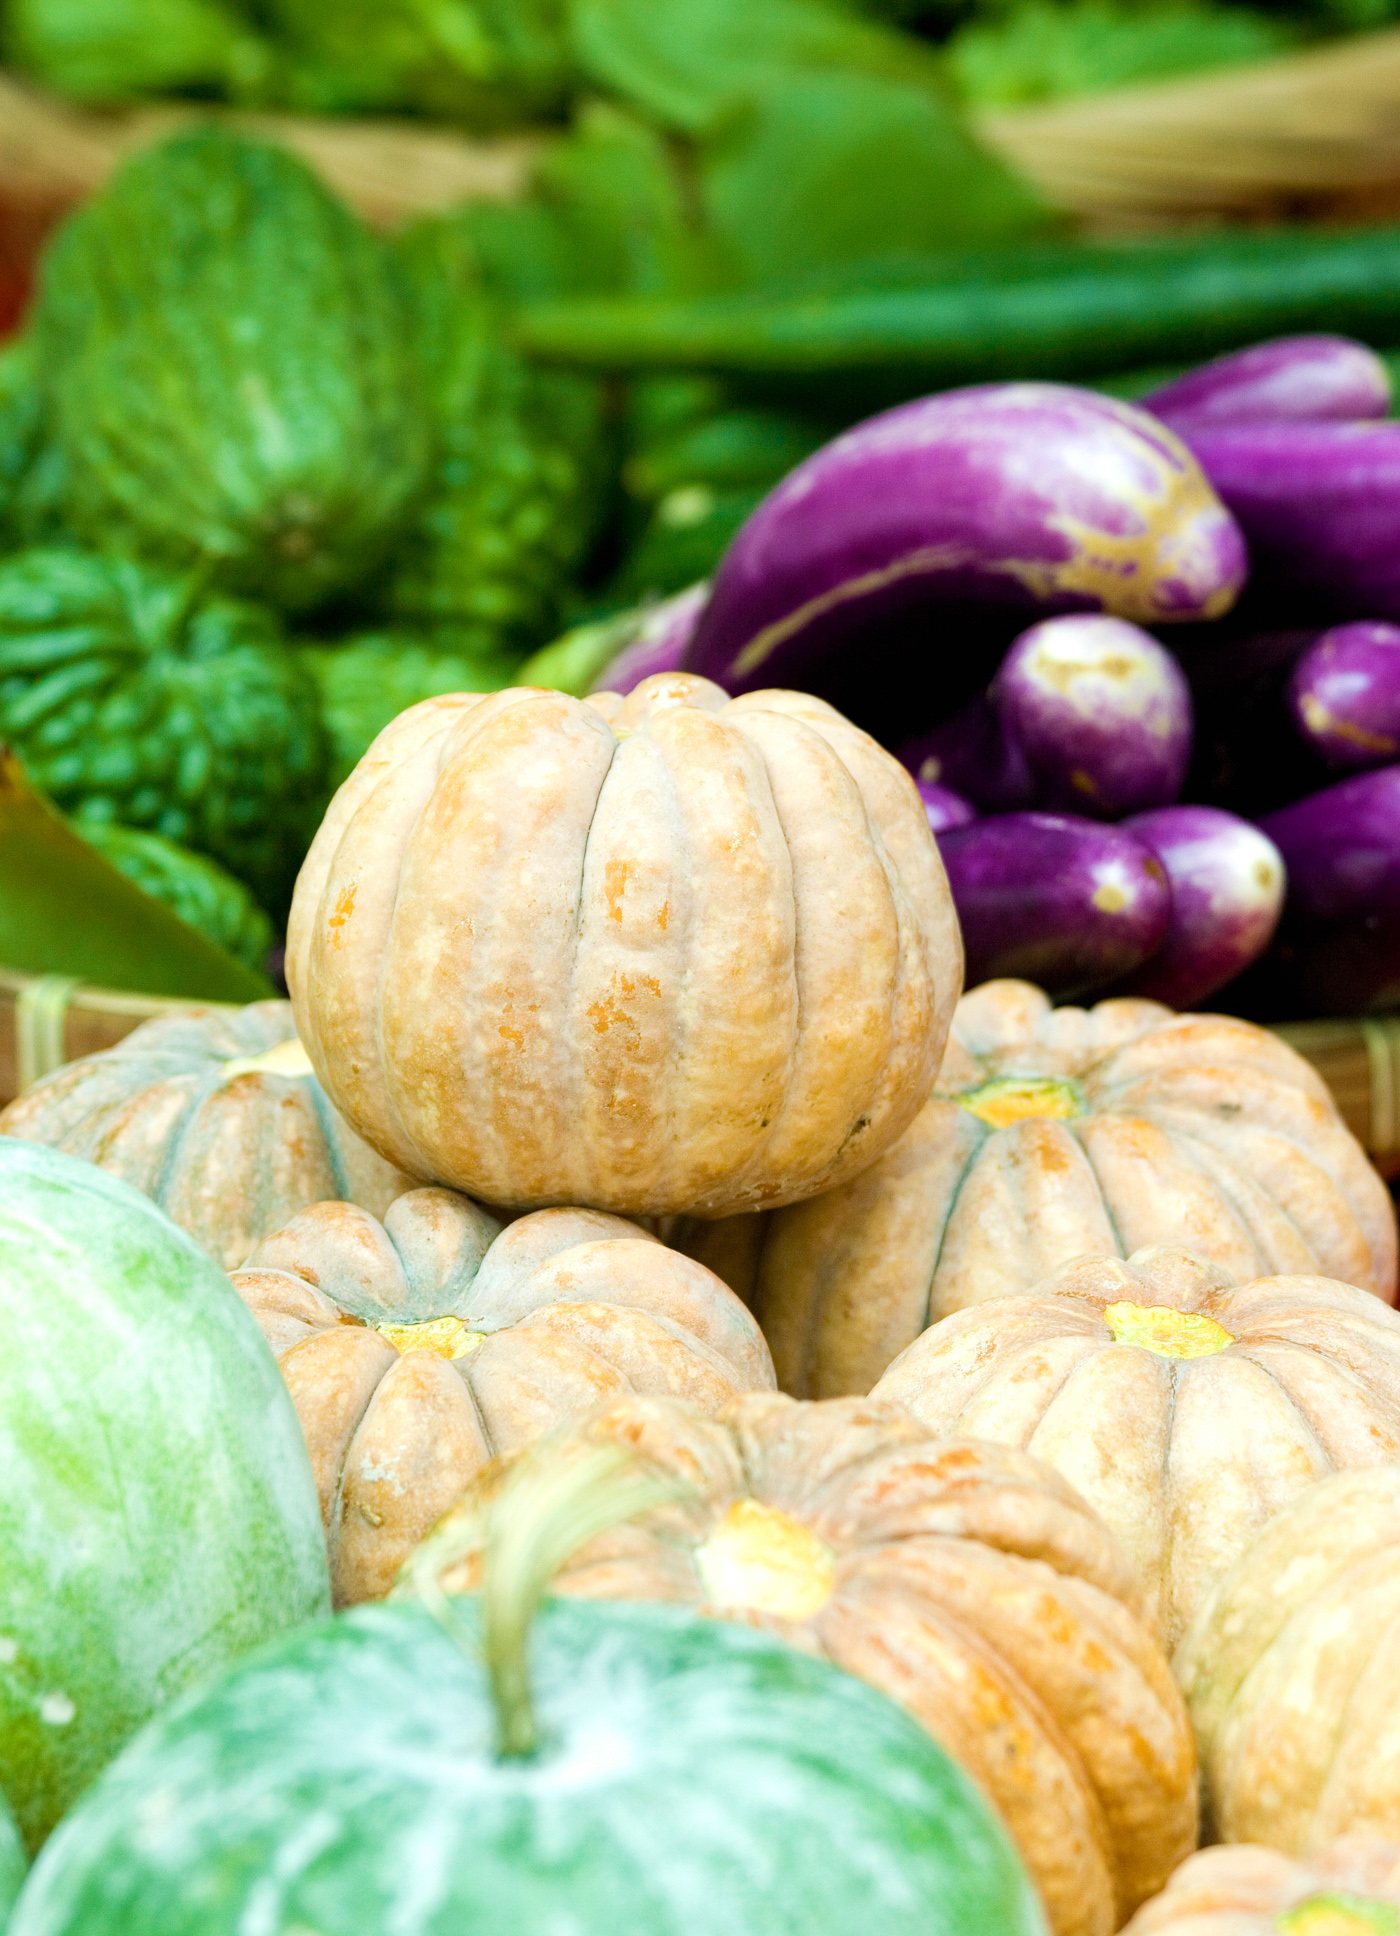 Organic vegetables in the market photo